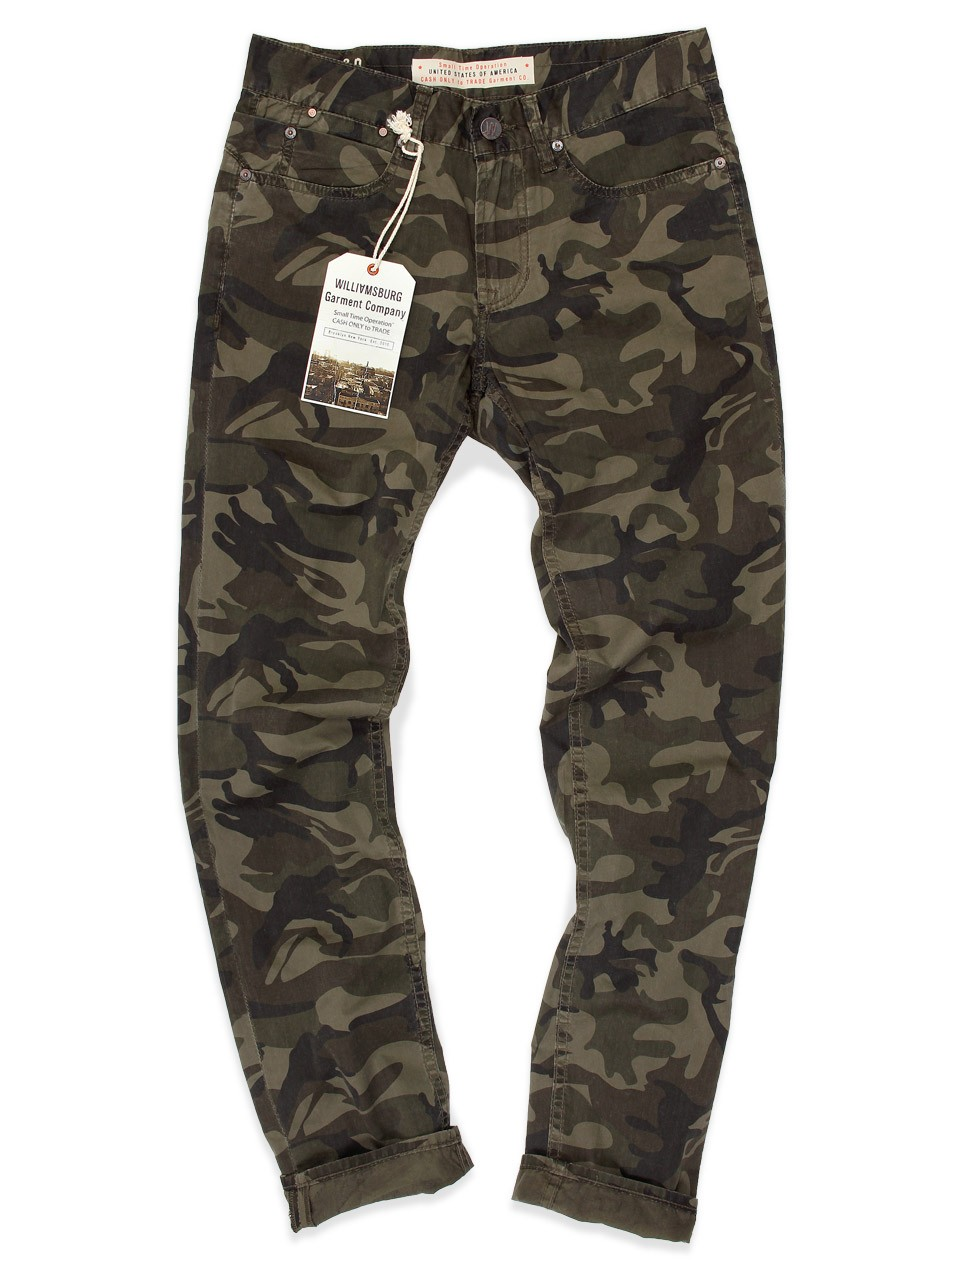 Lt Weight Camouflage Slim Jean-Cut pants - GRAND STREET